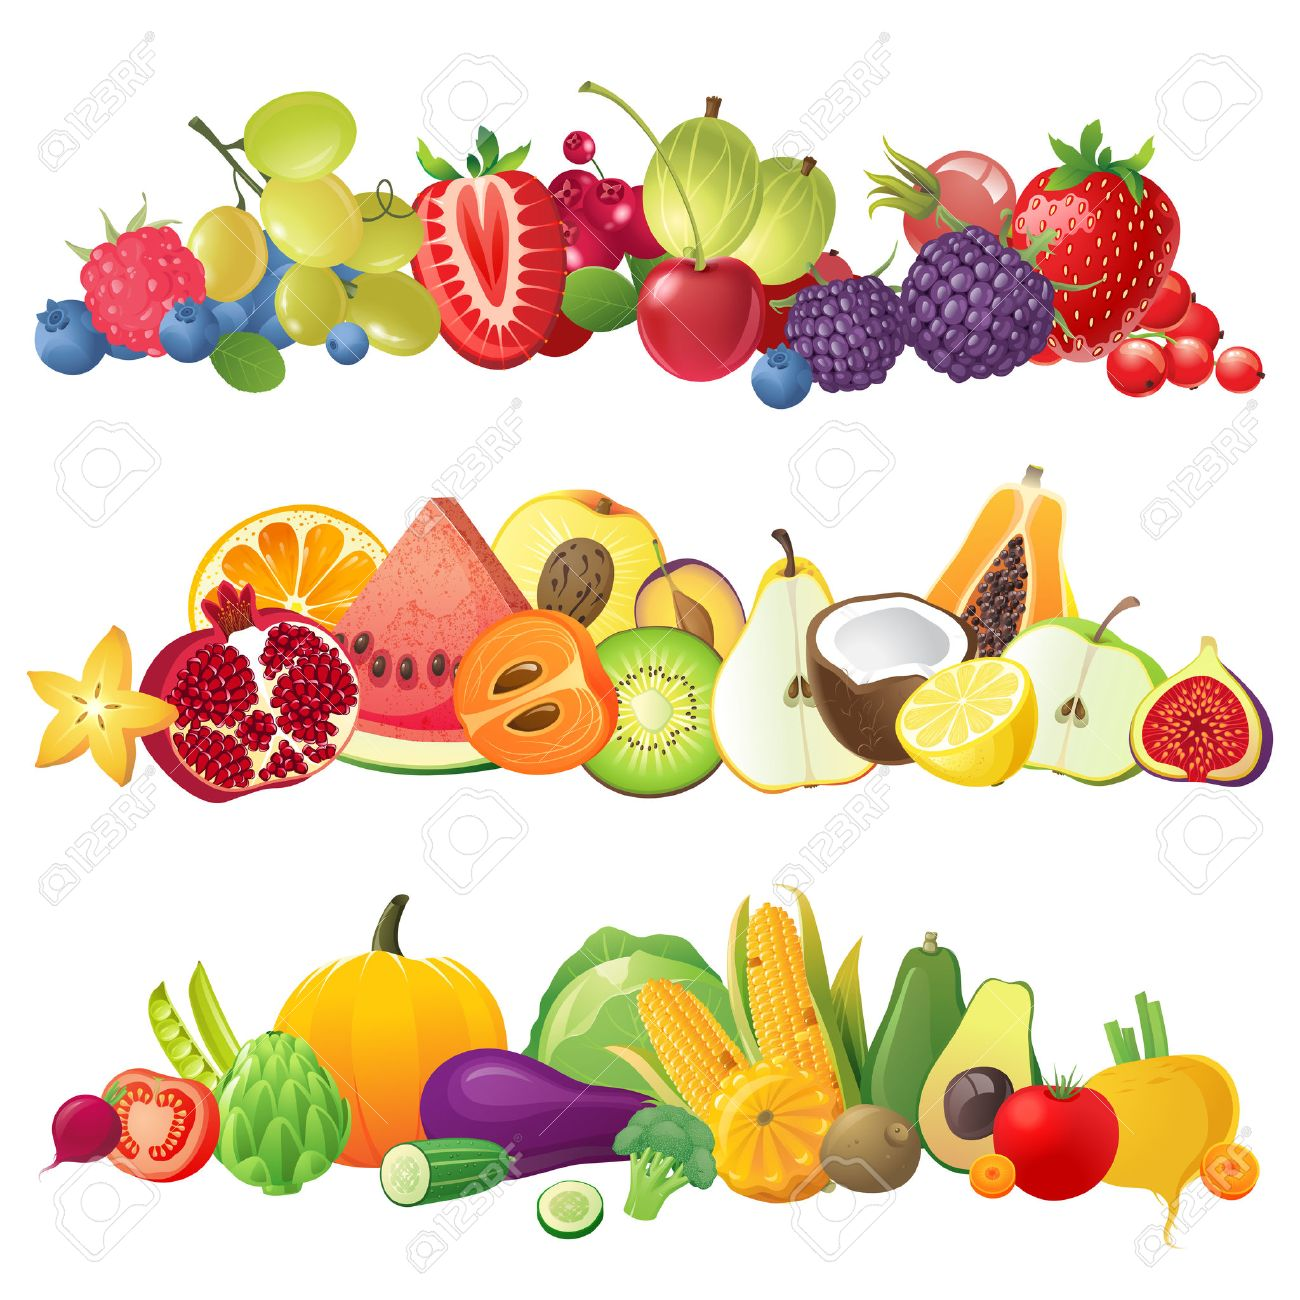 3 fruits vegetables and berries horizontal borders.